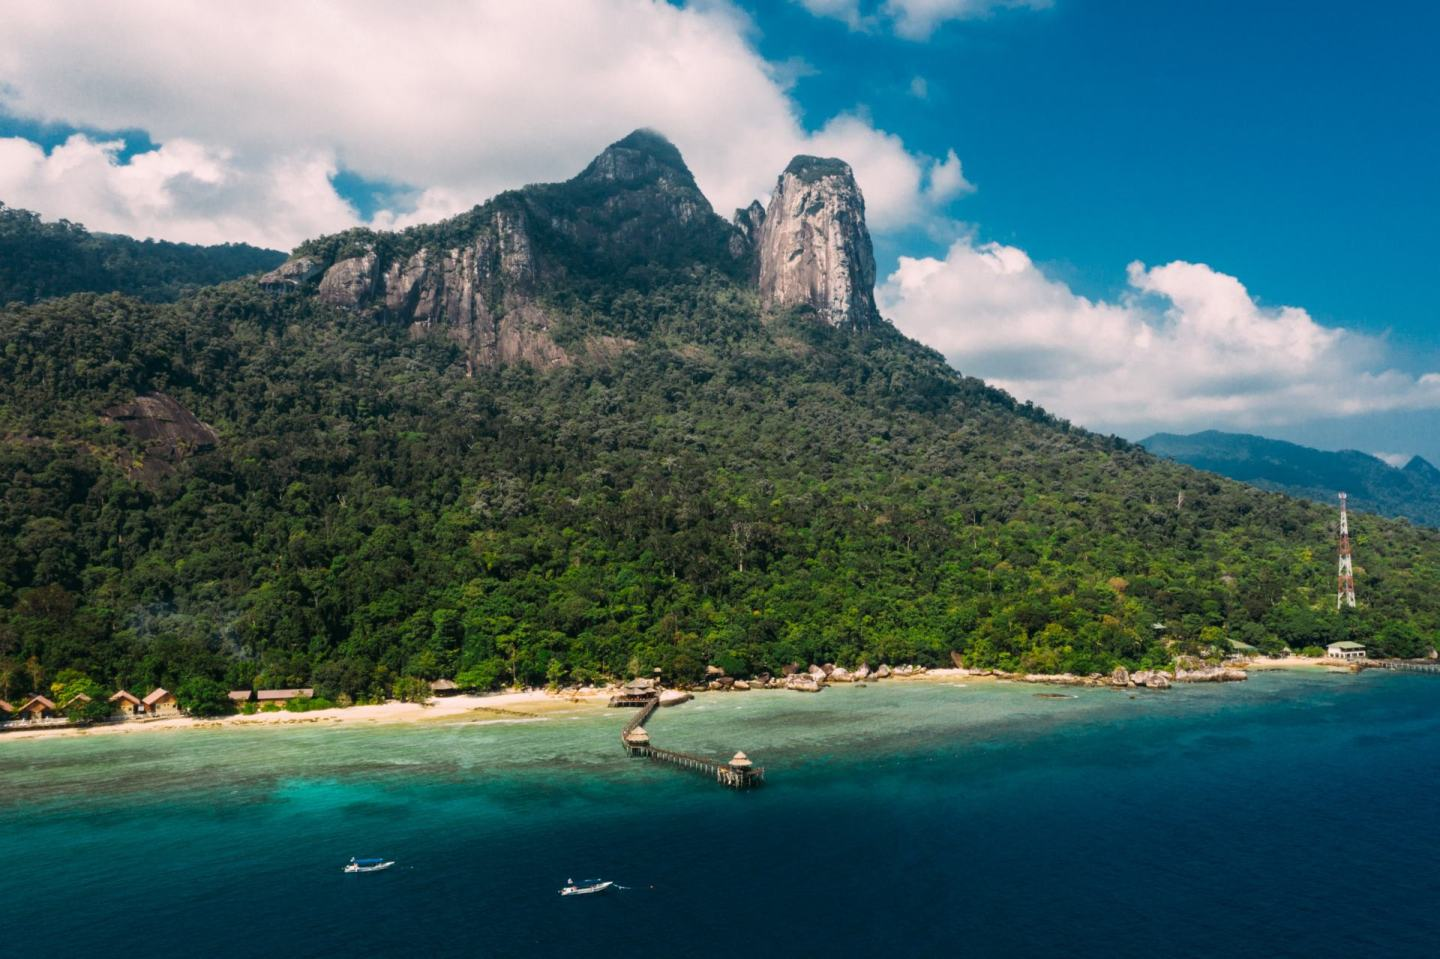 view from the island Tioman